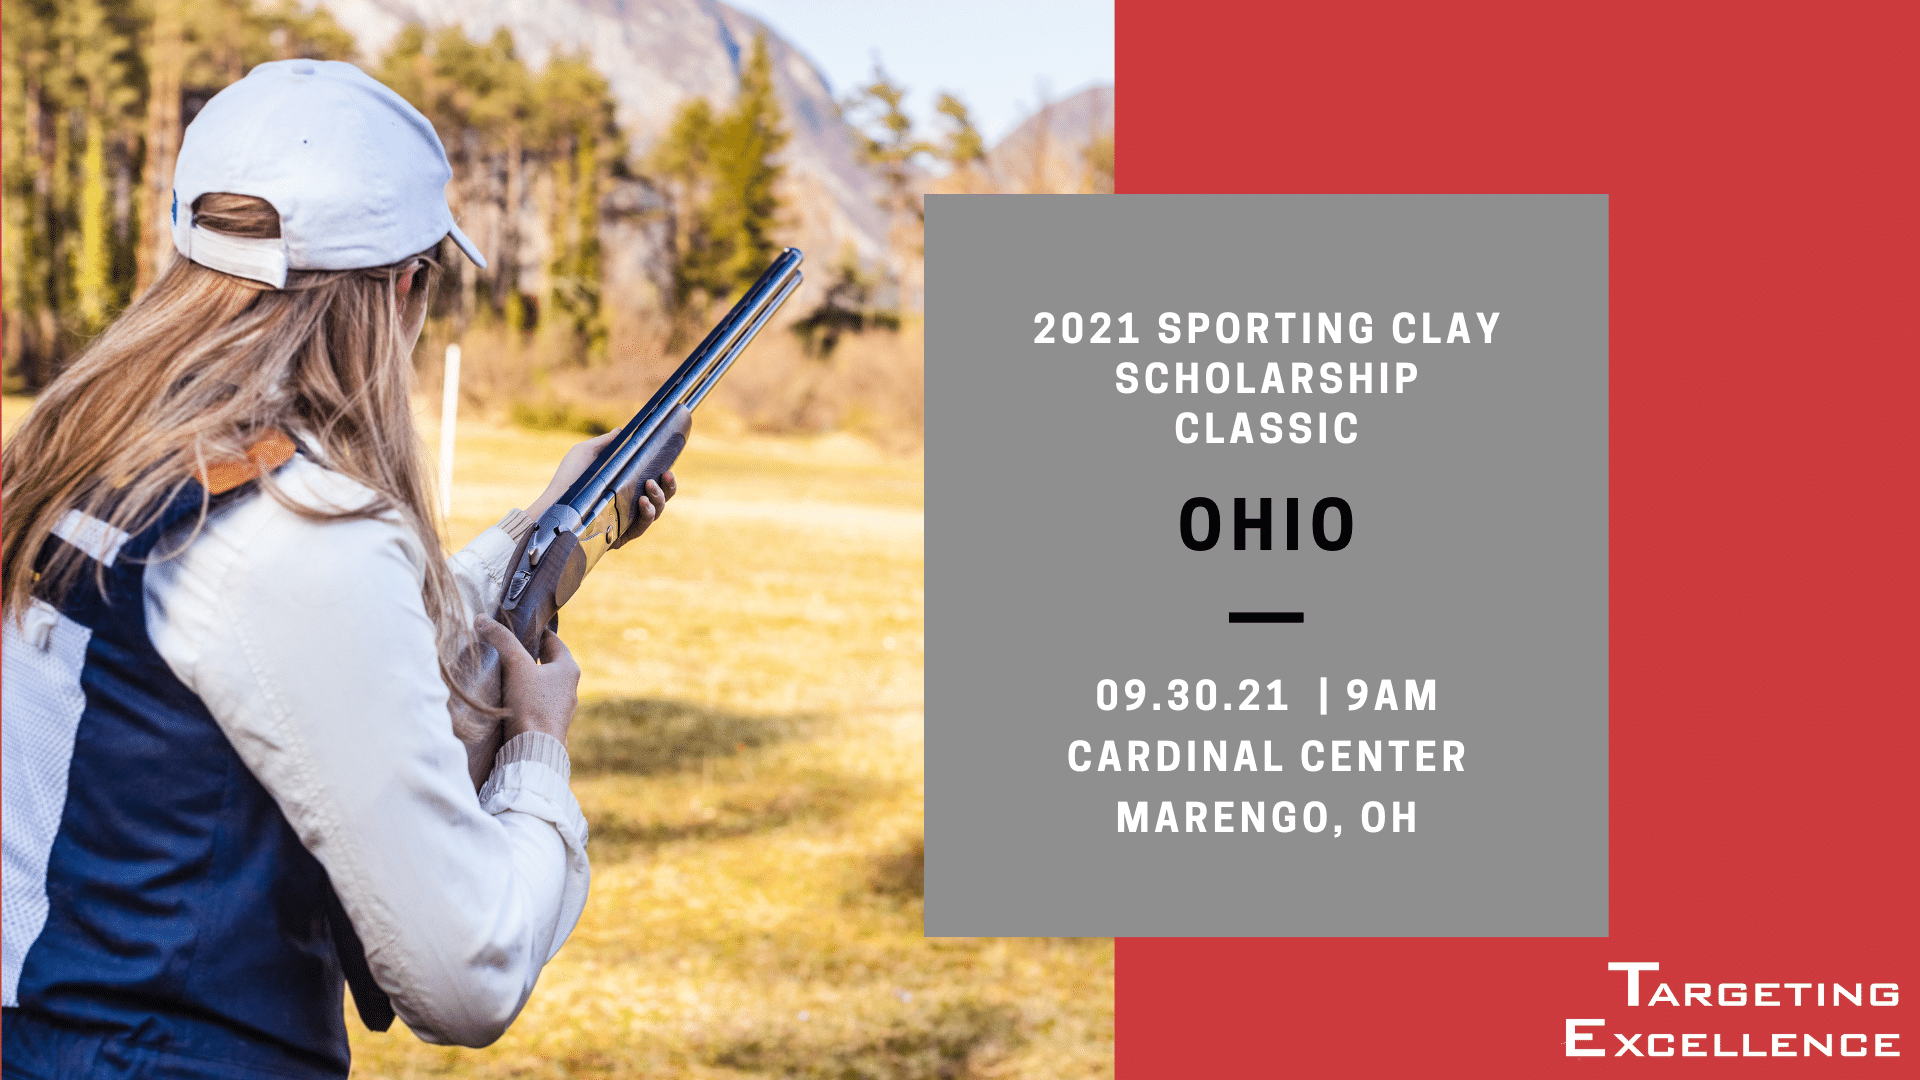 2021 Ohio Targeting Excellence Sporting Clay Scholarship Classic